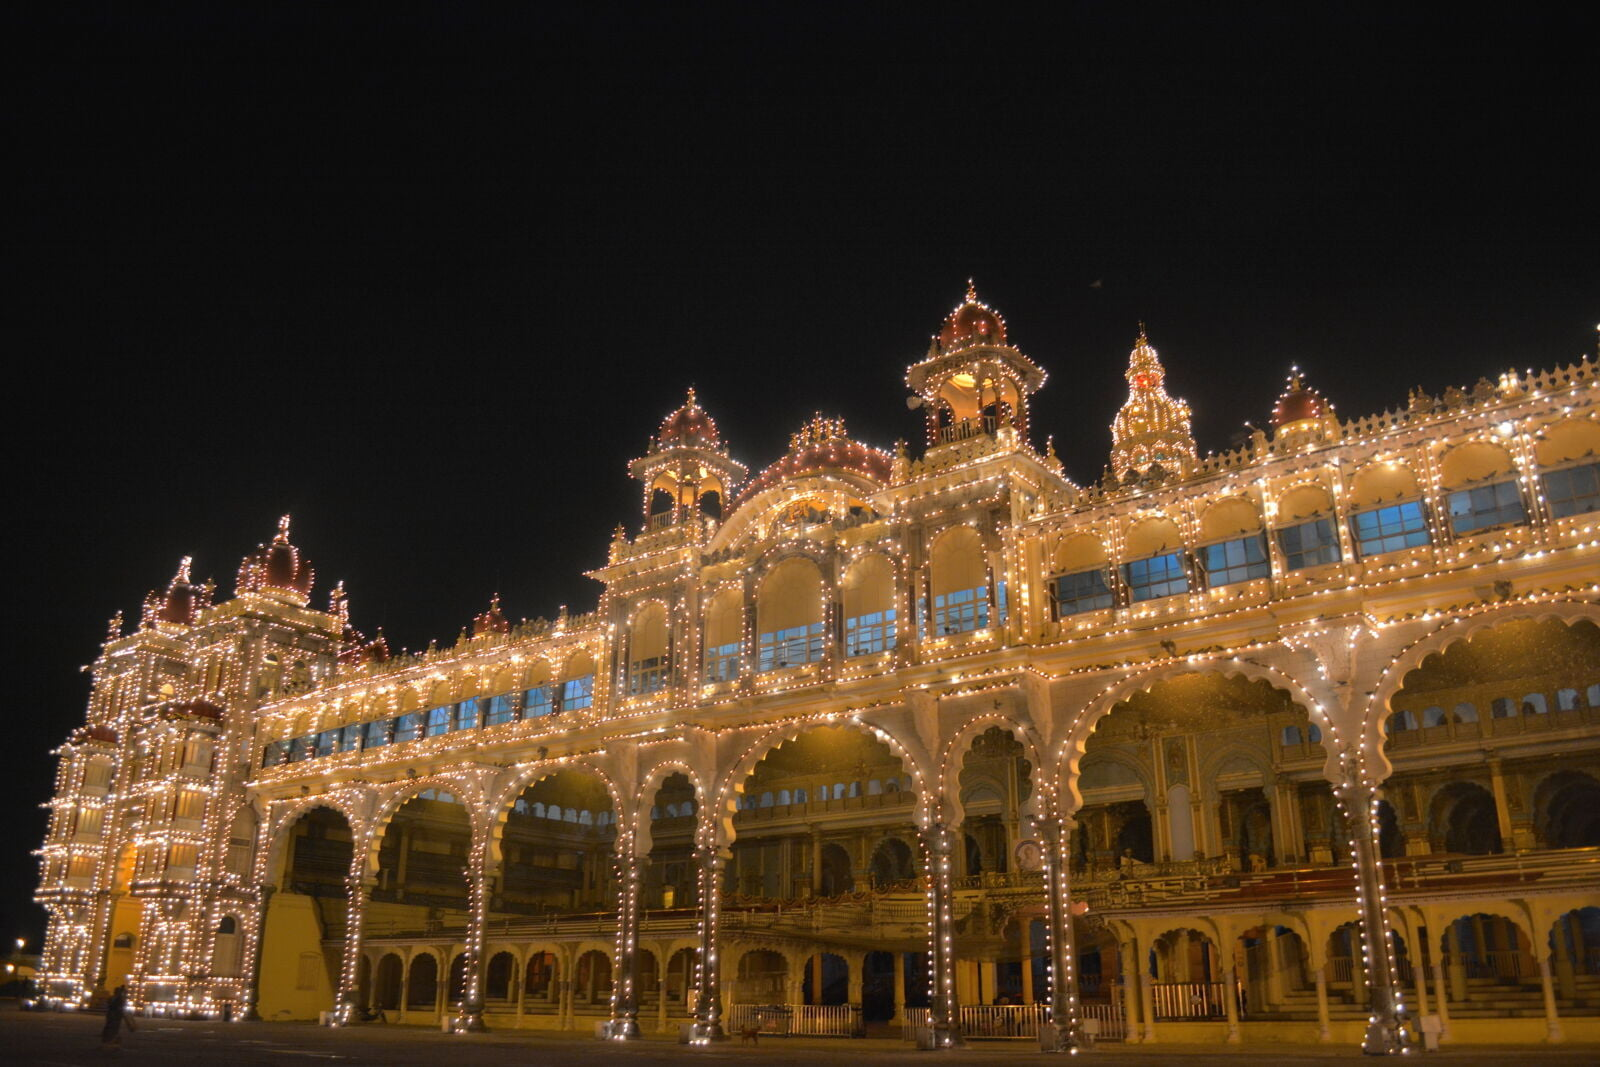 mysore-palace-side-view-night